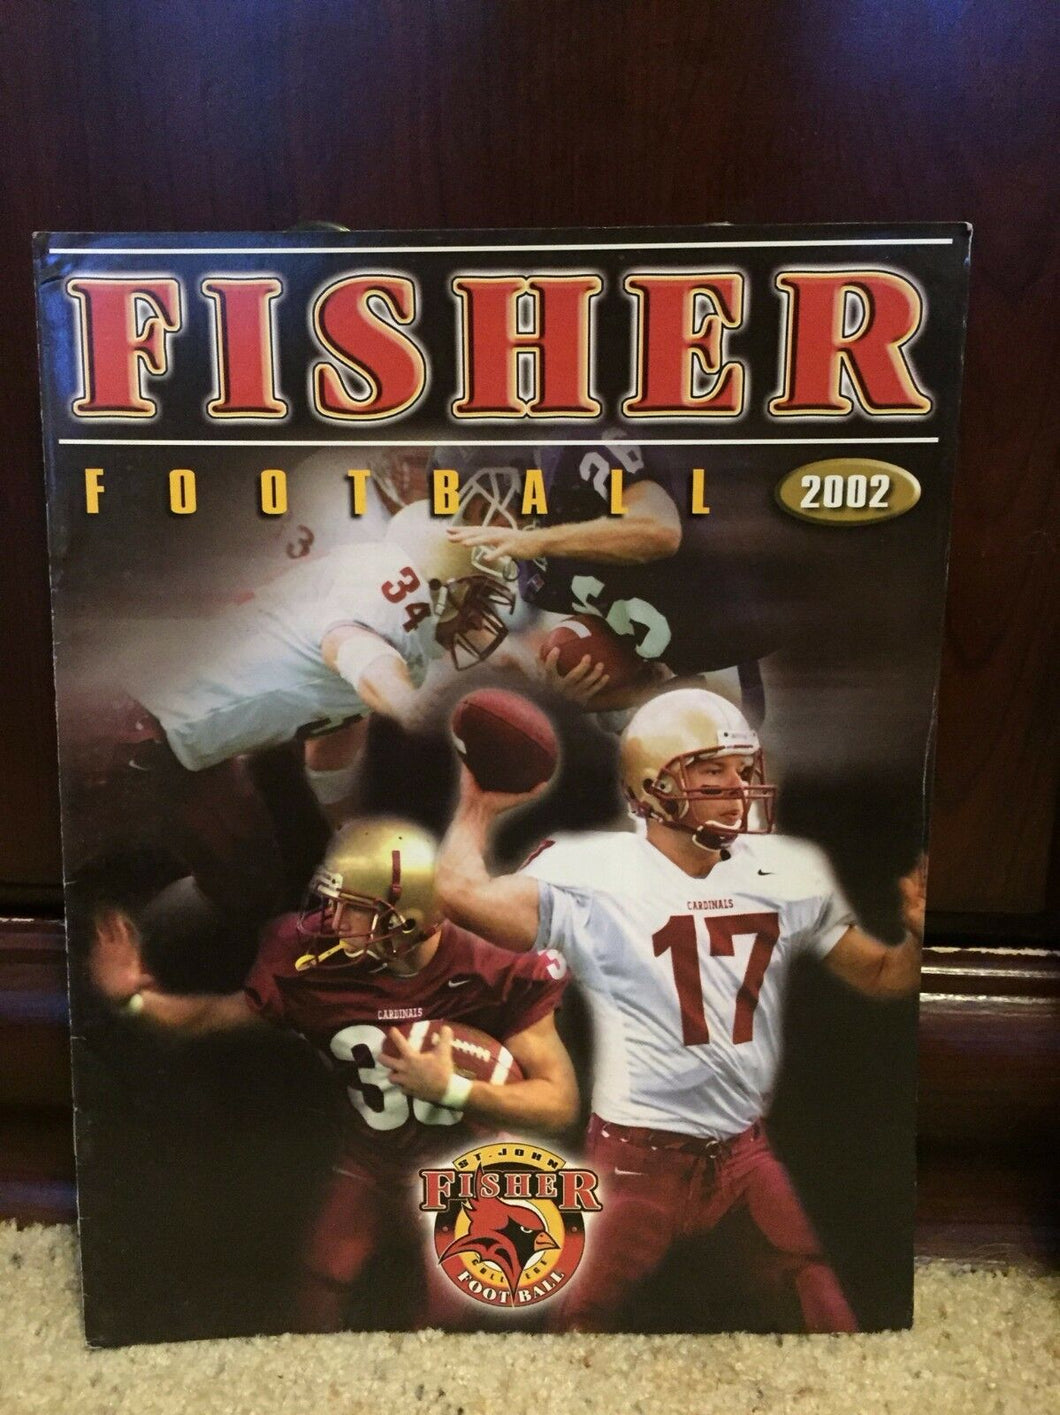 2002 ST. JOHN FISHER CARDINALS COLLEGE FOOTBALL MEDIA GUIDE EX - b3